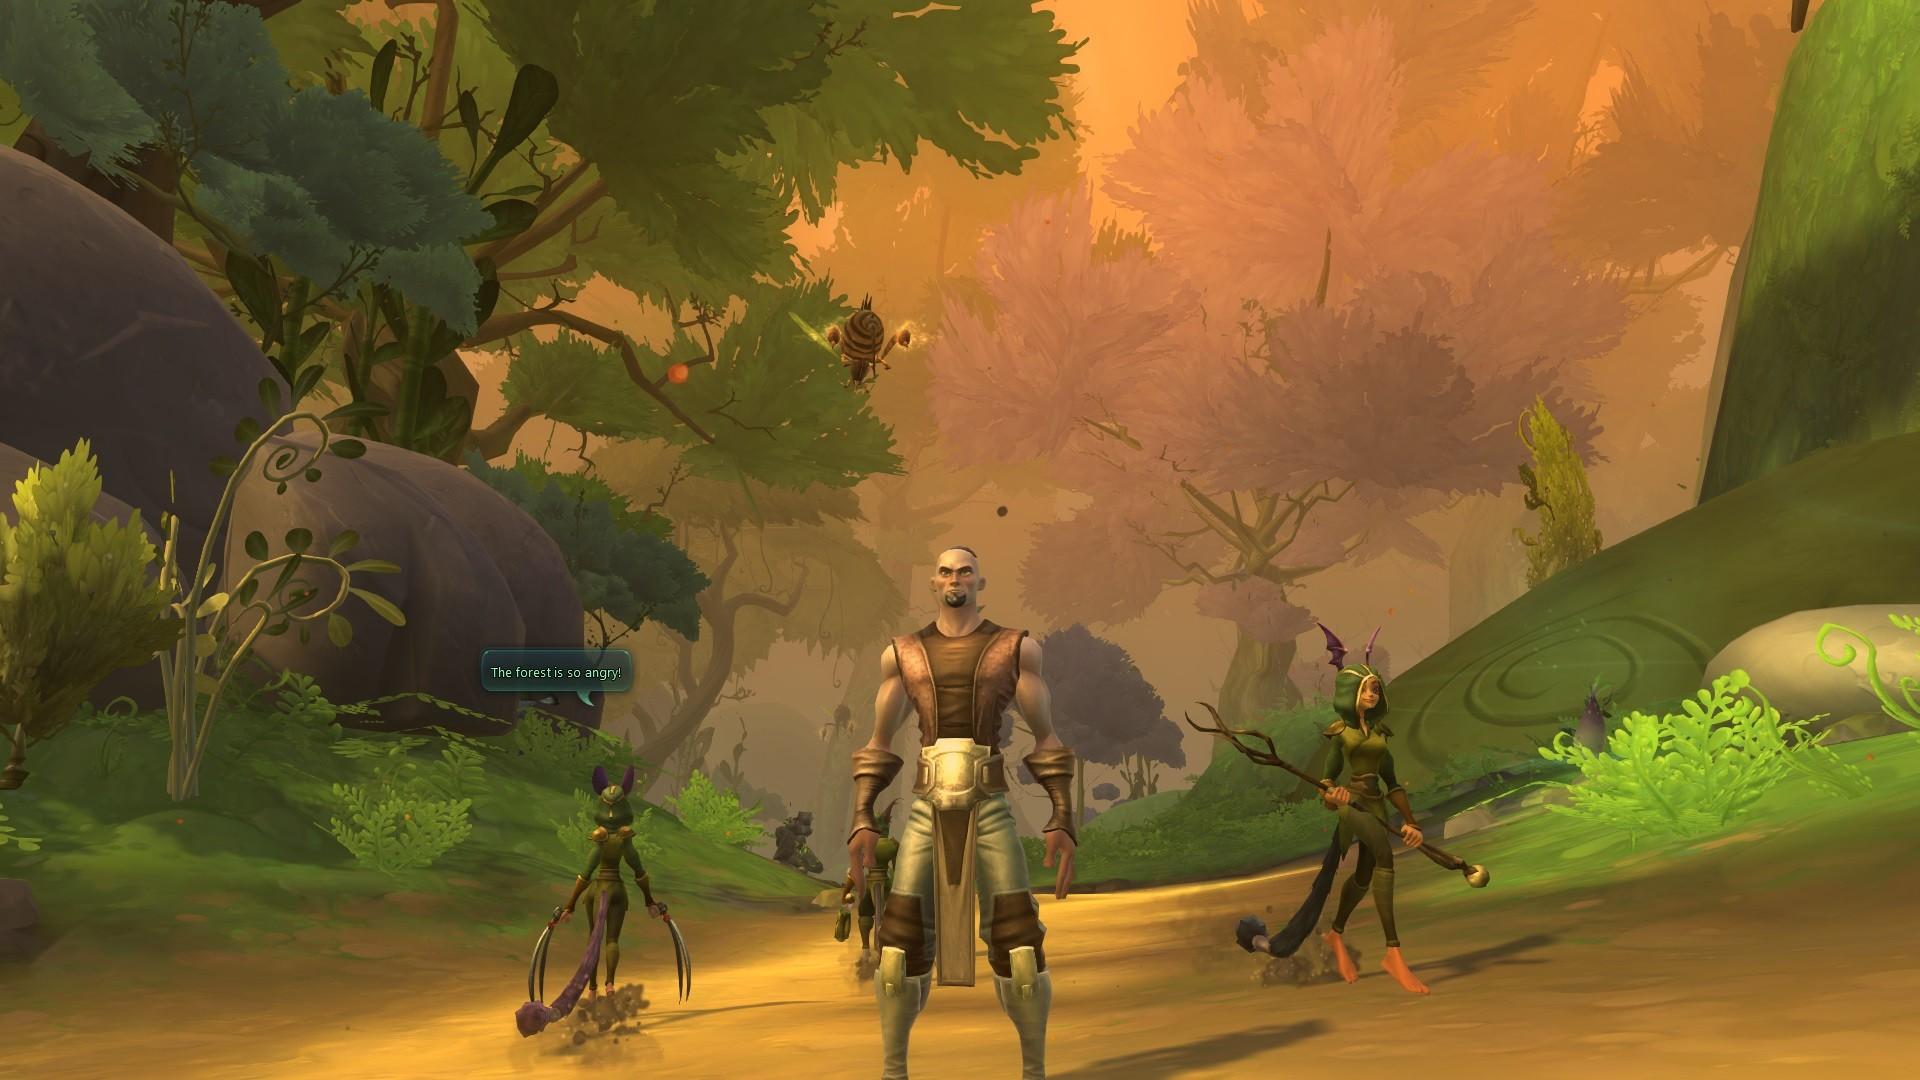 WildStar. The forest is so angry...